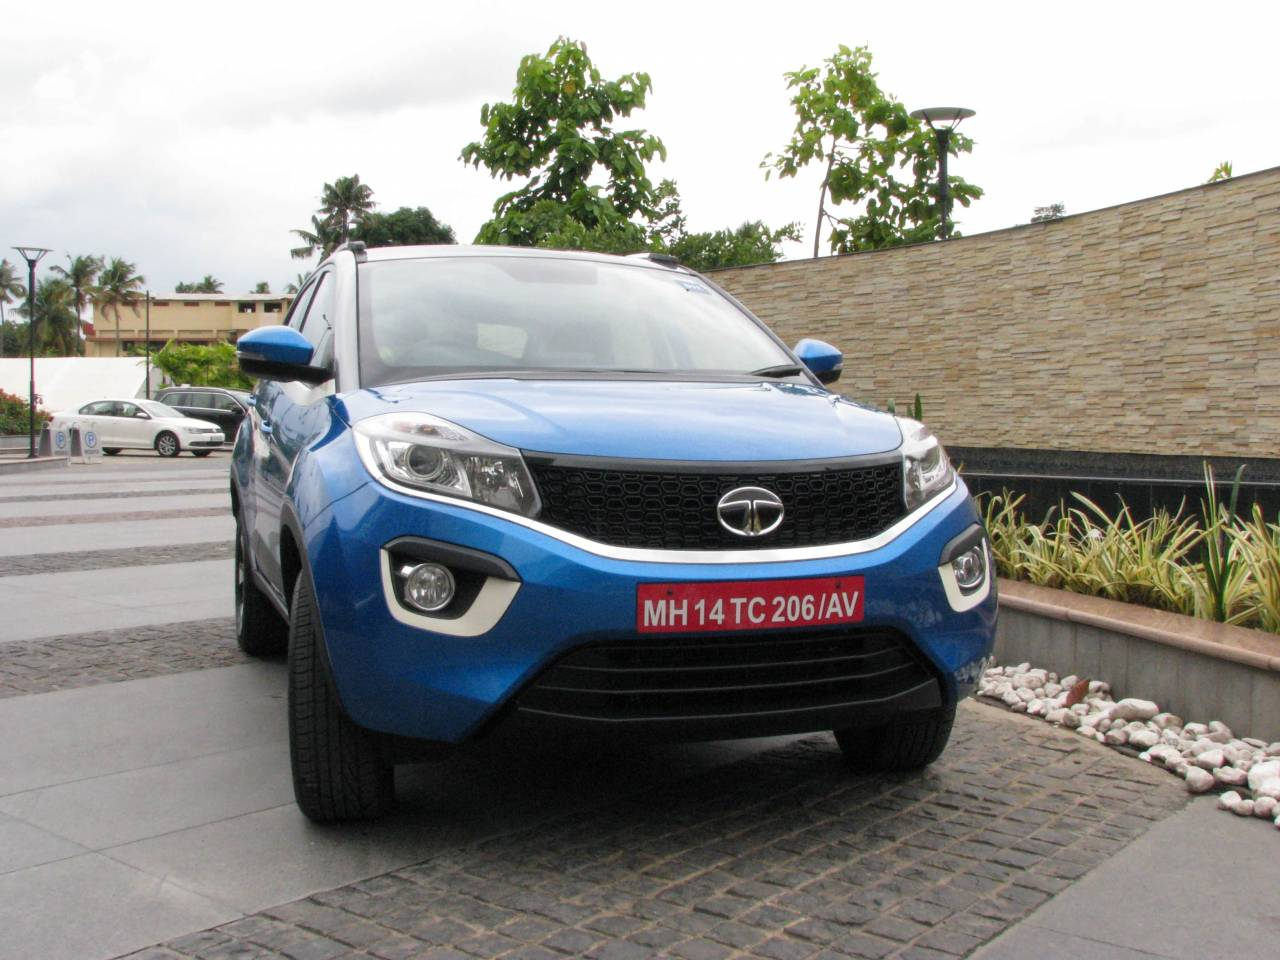 Tata Nexon, the offbeat and stylish compact SUV from Tata Motors, became one of its best-sellers. But with rising competition the company is forced to offer discounts of Rs 85,000 on the Nexon (Image: Tata Motors)